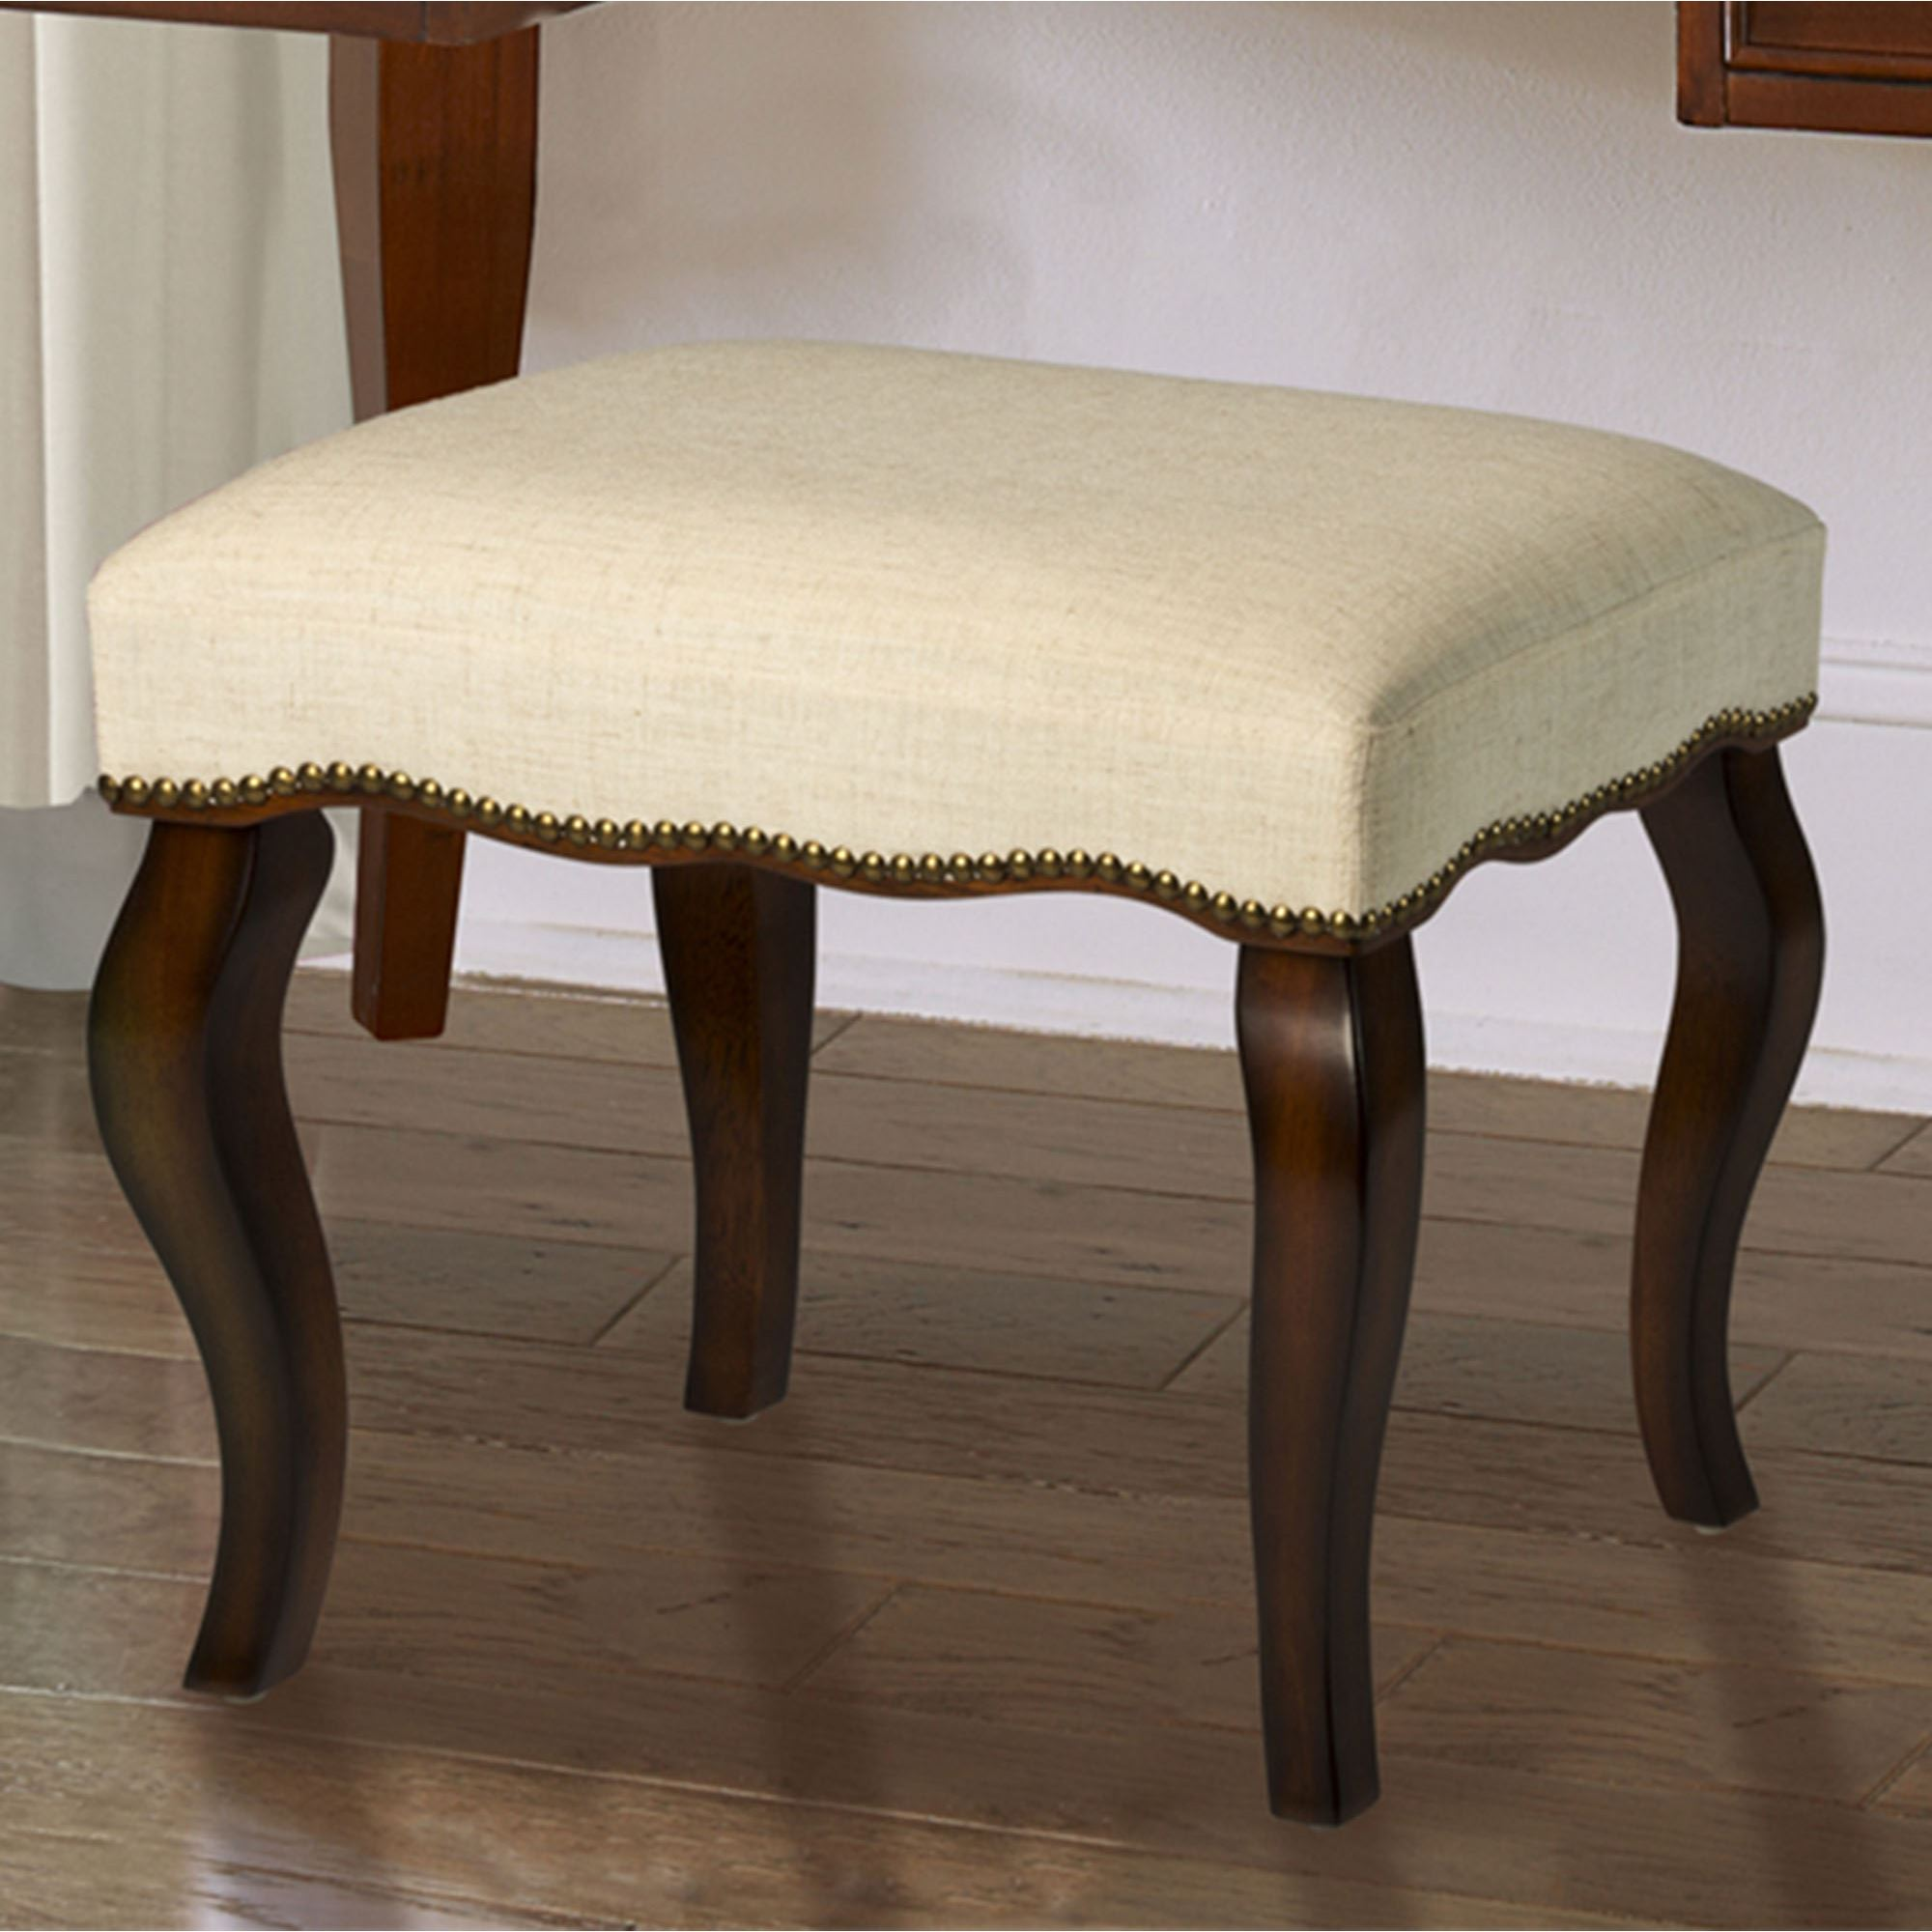 Groovy Gillian Cushioned Dark Cherry Wooden Vanity Stool Squirreltailoven Fun Painted Chair Ideas Images Squirreltailovenorg